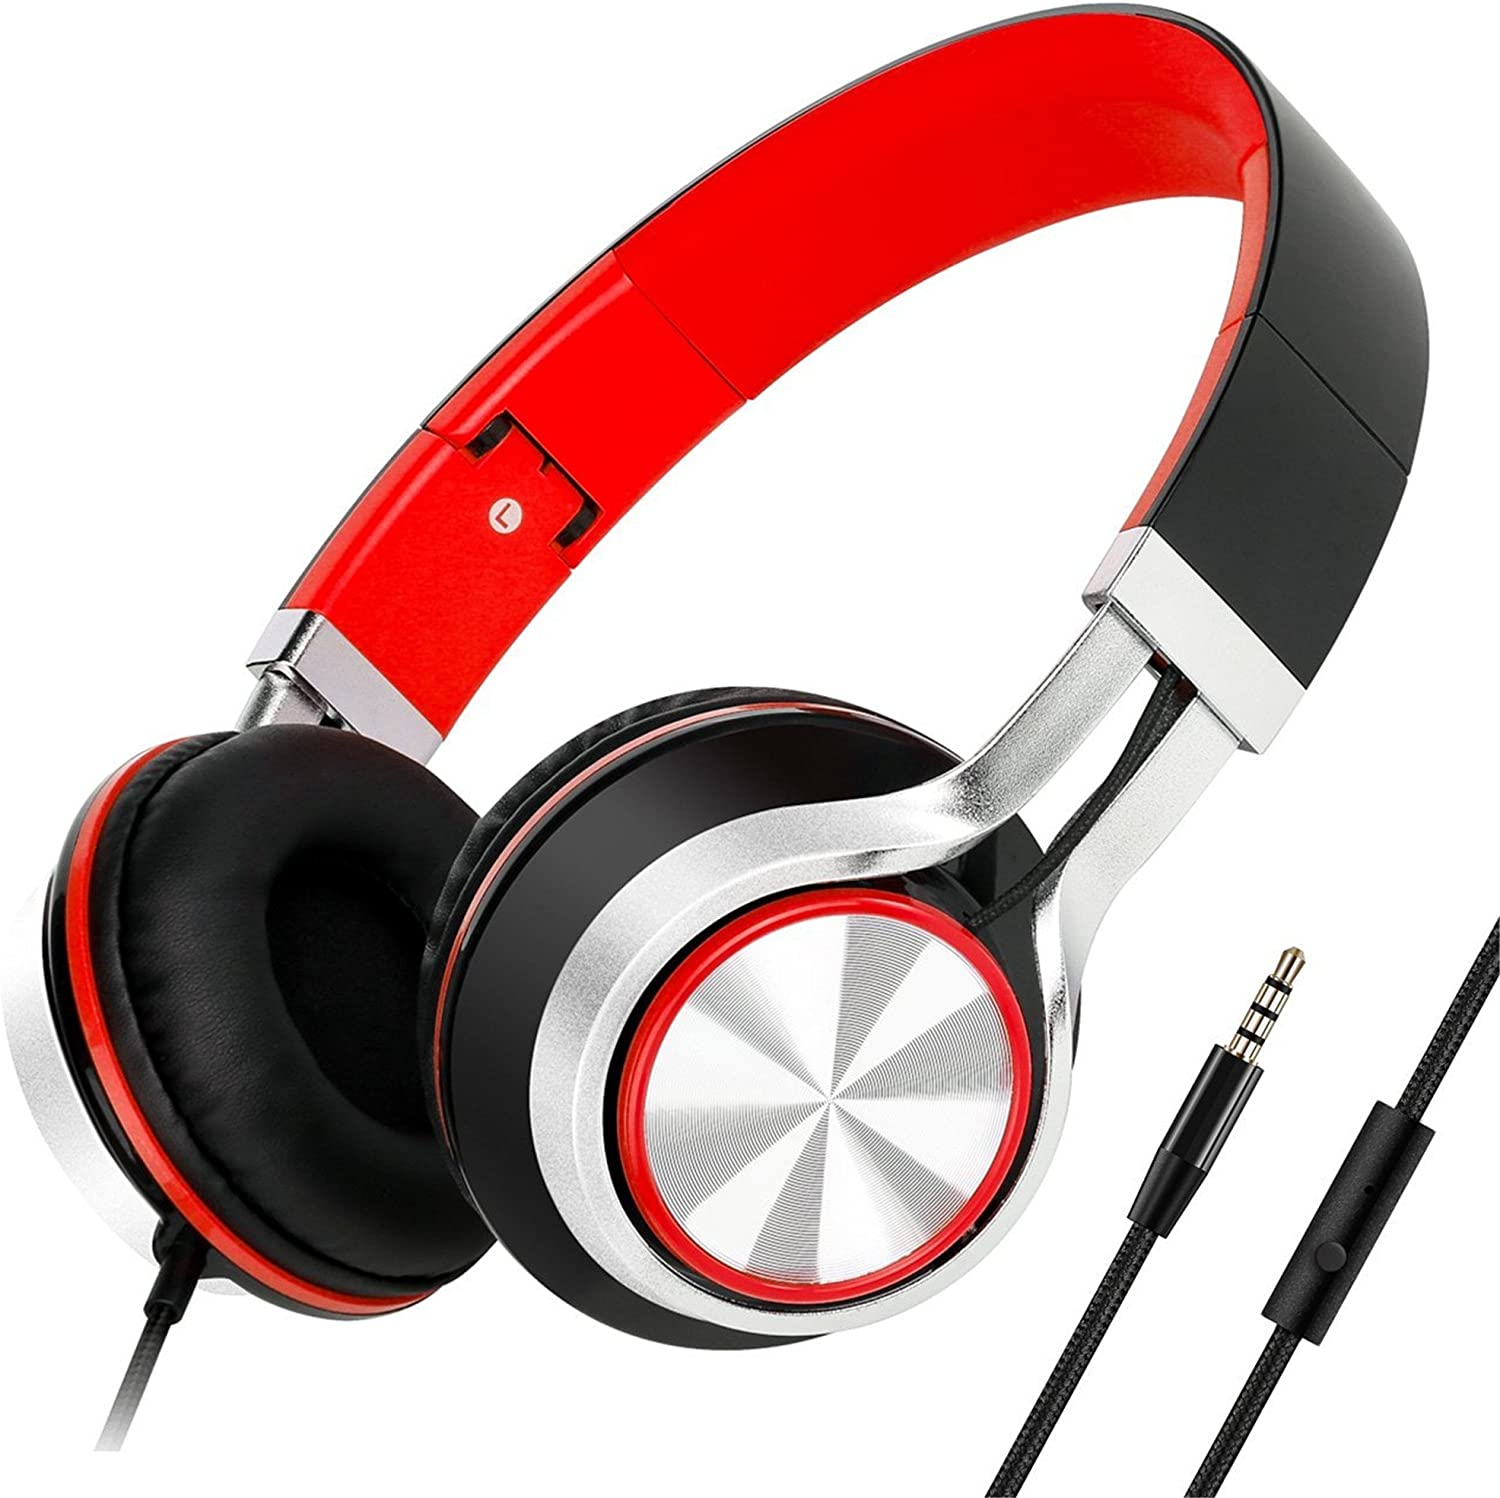 Sound Intone HD200 Headphones with Microphone Lightweight Folding Stereo Earphones for iPhone,PC,Laptop, Android Smartphones,Tablet (Black/Red)